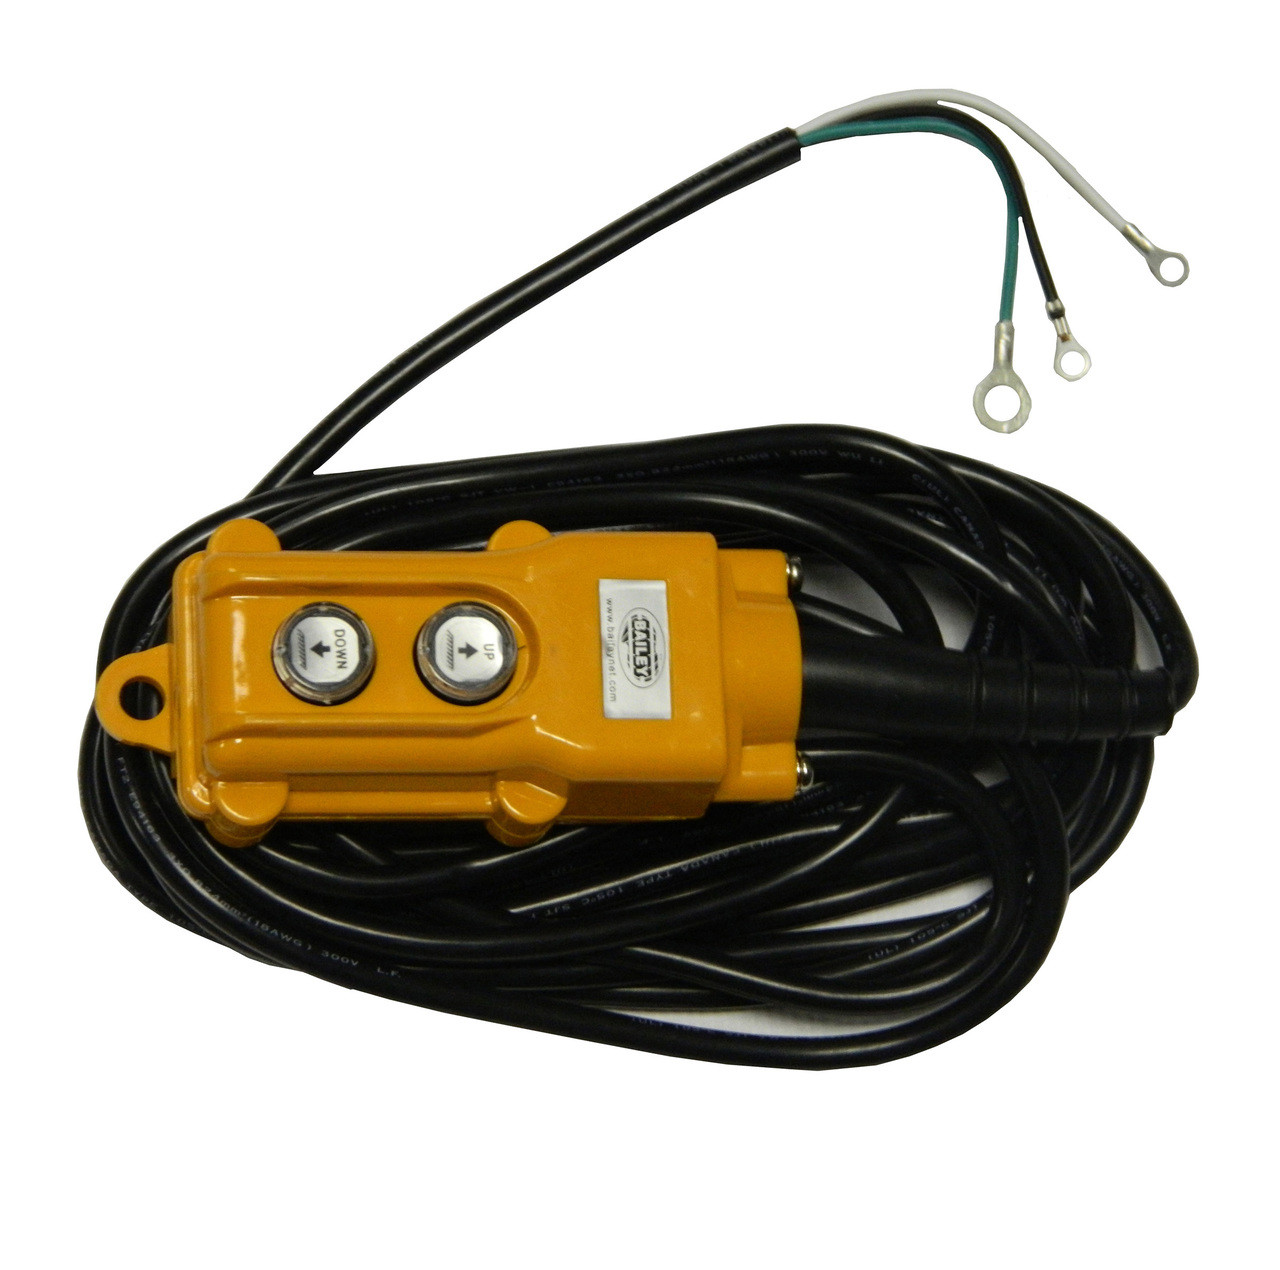 DTRC-GD --- Replacement Remote Control for Dump Trailers, 3 wire on